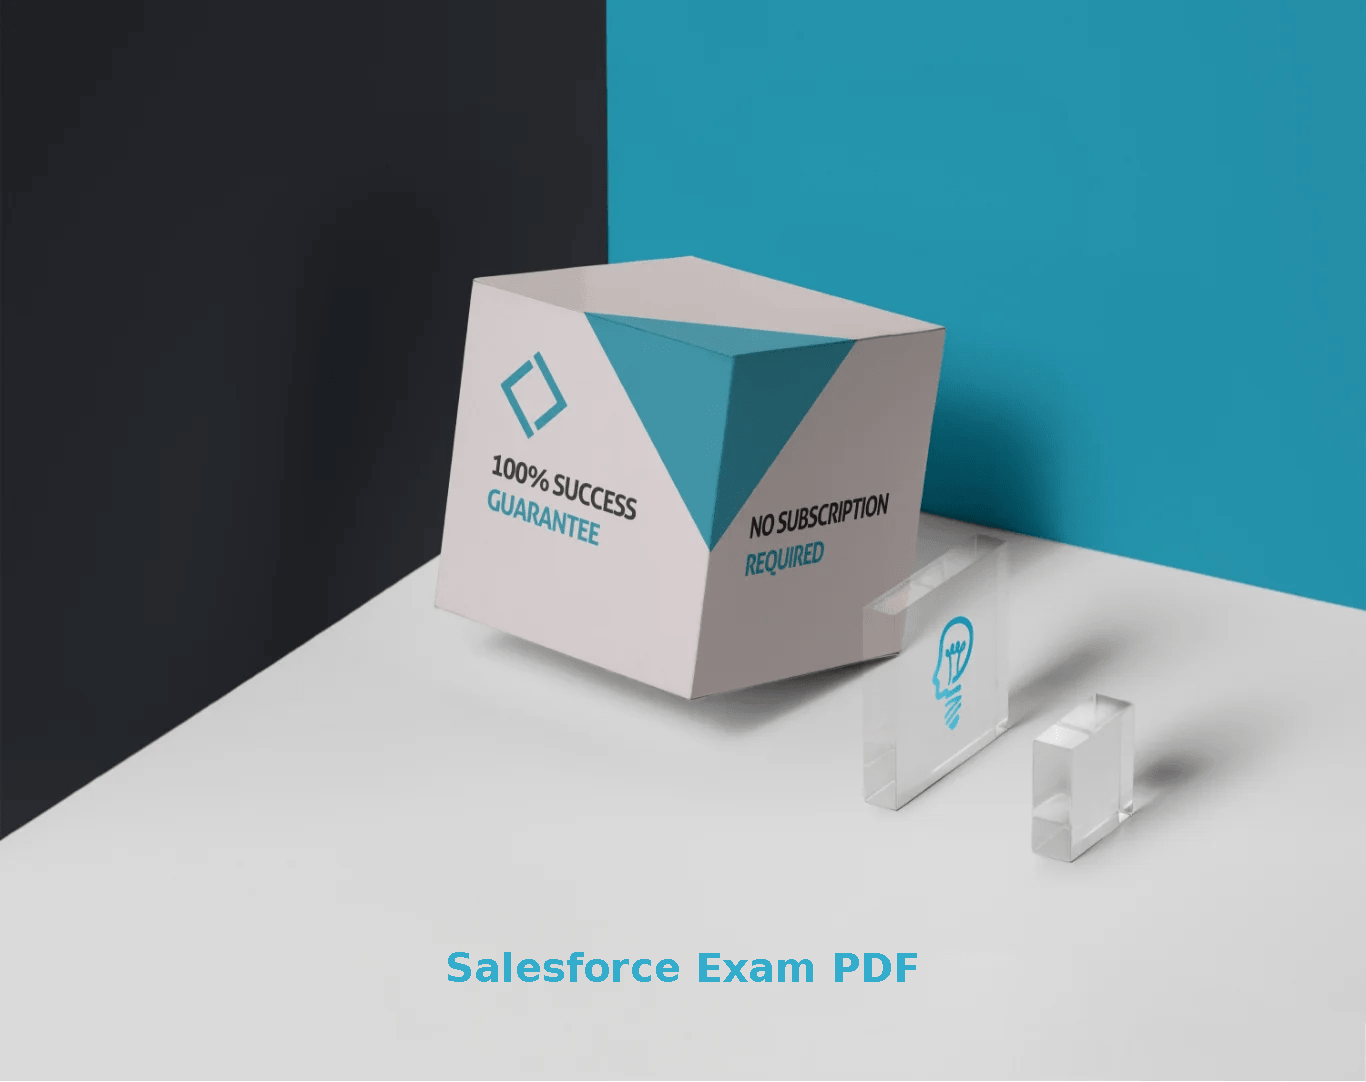 Salesforce Exam PDF